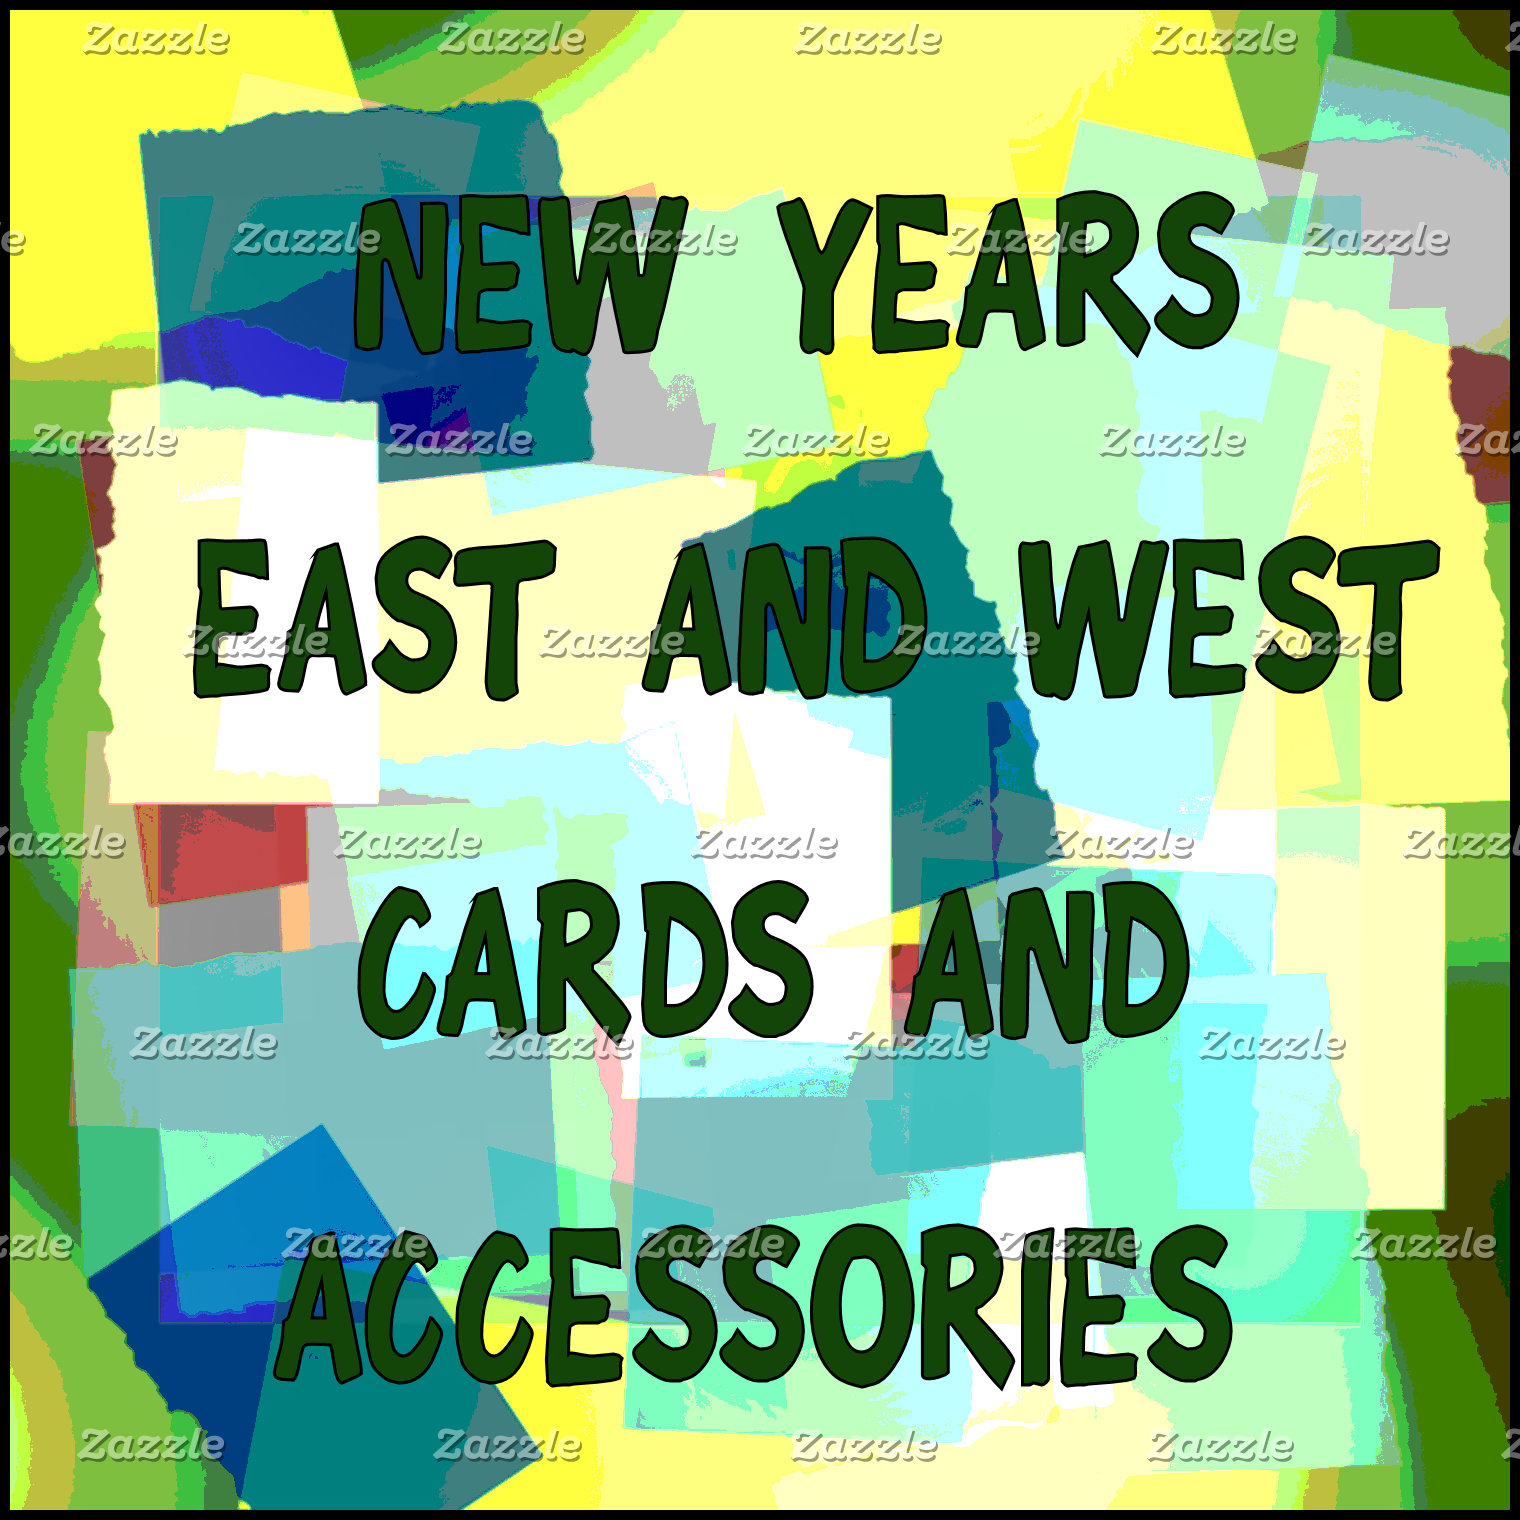 NEW YEARS CARDS AND ACCESSORIES